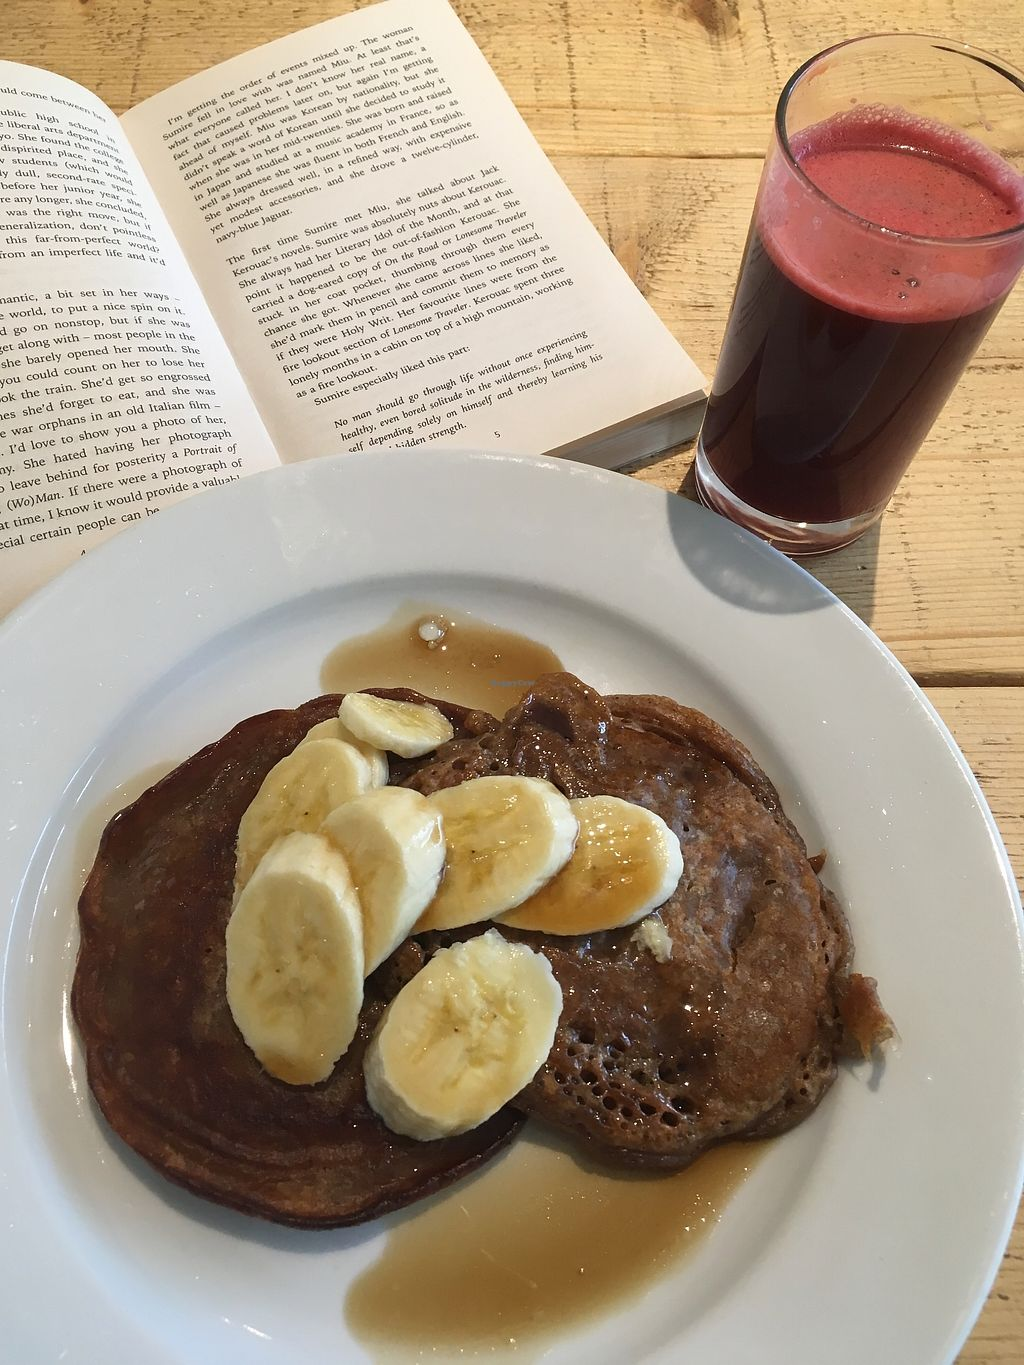 """Photo of Green Kitchen  by <a href=""""/members/profile/jojoinbrighton"""">jojoinbrighton</a> <br/>Pancakes with banana and syrup <br/> August 5, 2017  - <a href='/contact/abuse/image/76632/288977'>Report</a>"""